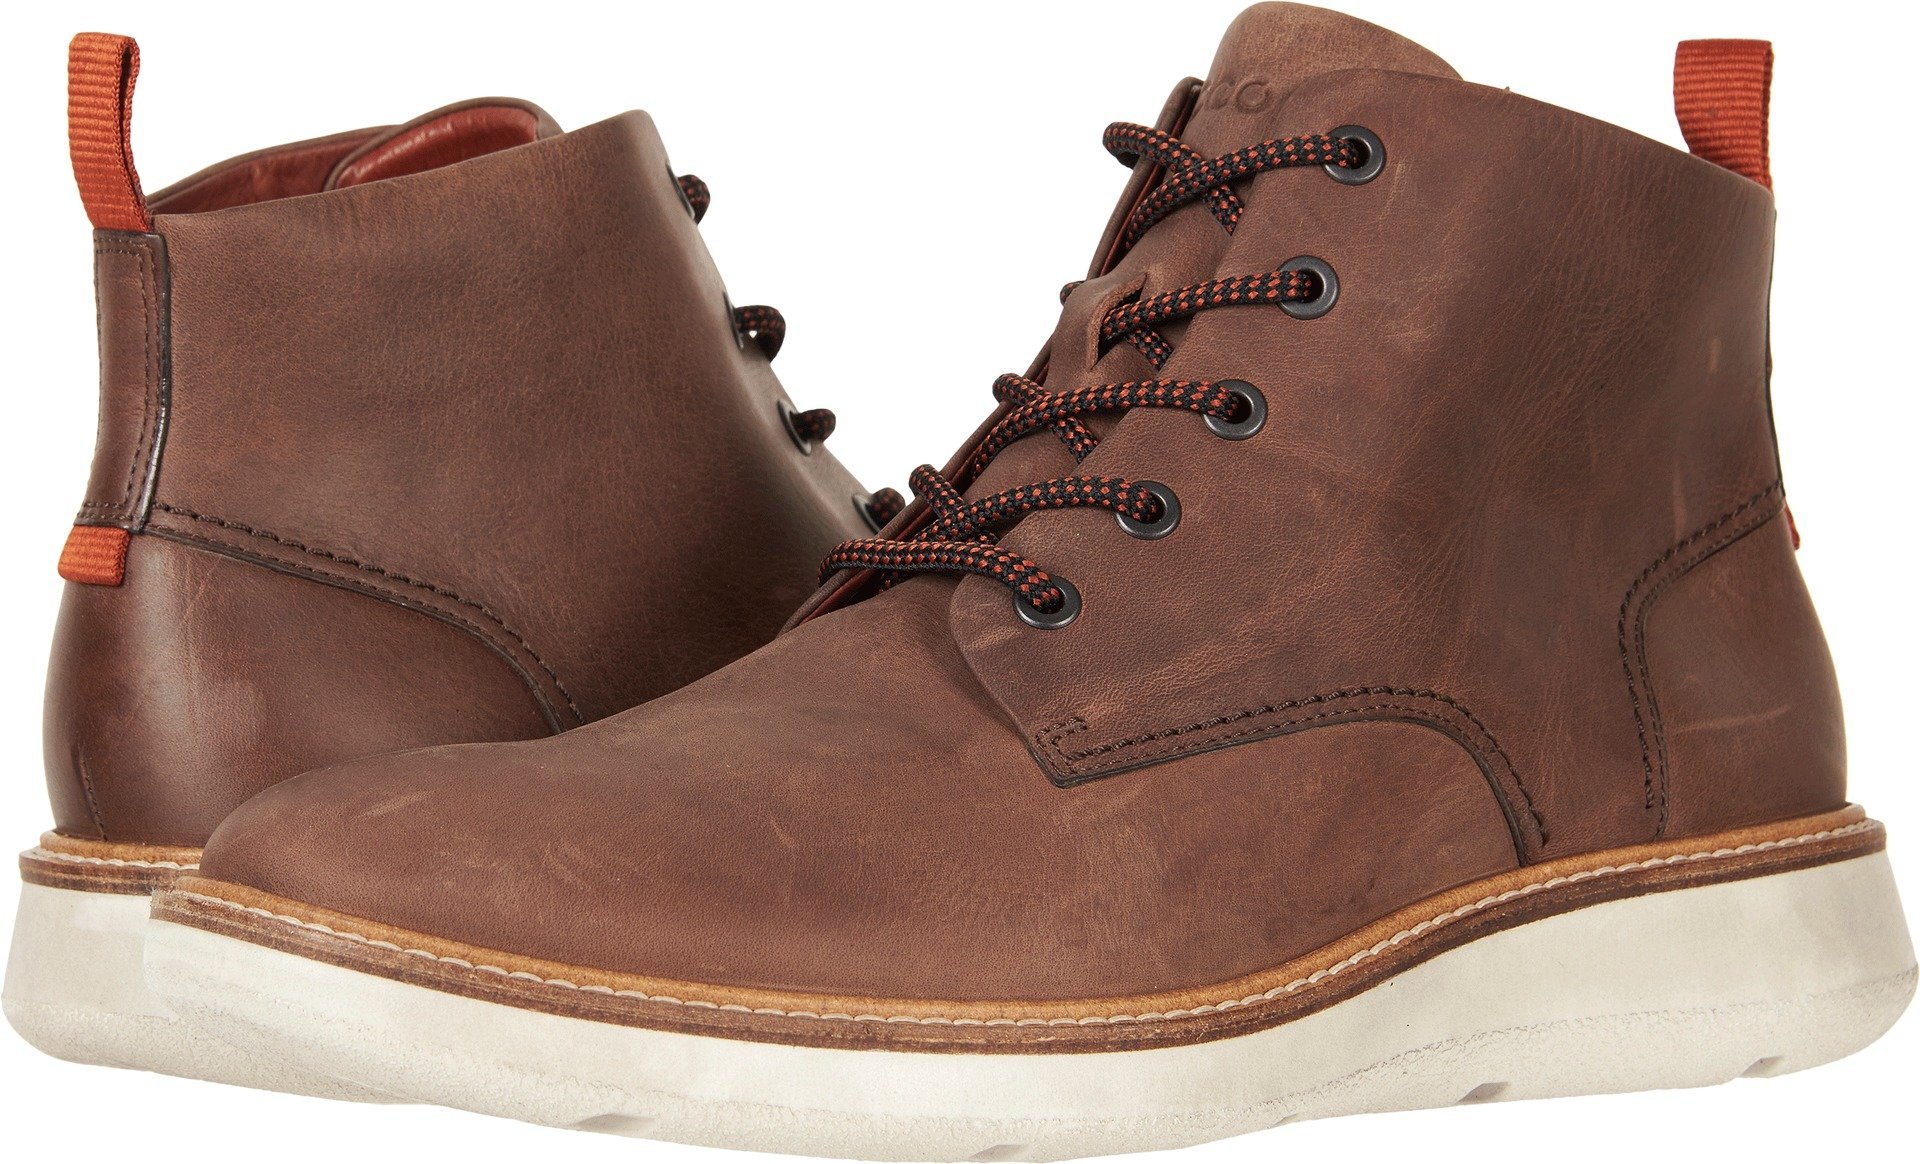 ECCO Men's Aurora Mid Chukka Boot, Cocoa Brown, 42 M EU/8-8.5 D(M) US